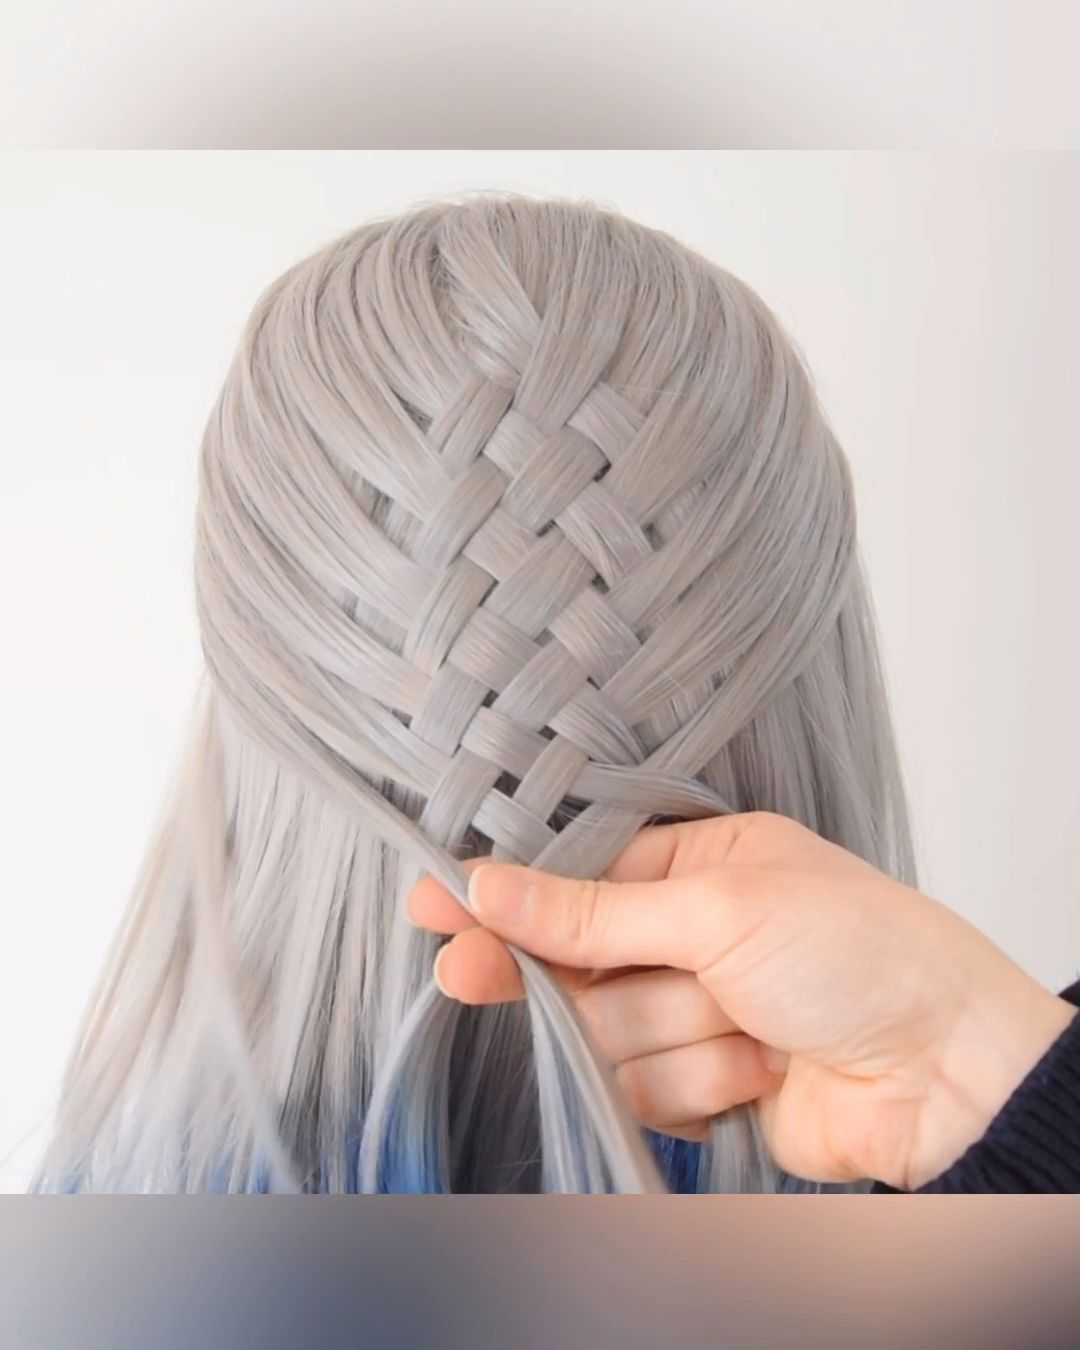 For This And Others Tutorial Look My Youtube Channel Free Music Www Bensound Com Basket Braid Hair Hai In 2020 Hair Tutorial Hair Videos Hair Upstyles